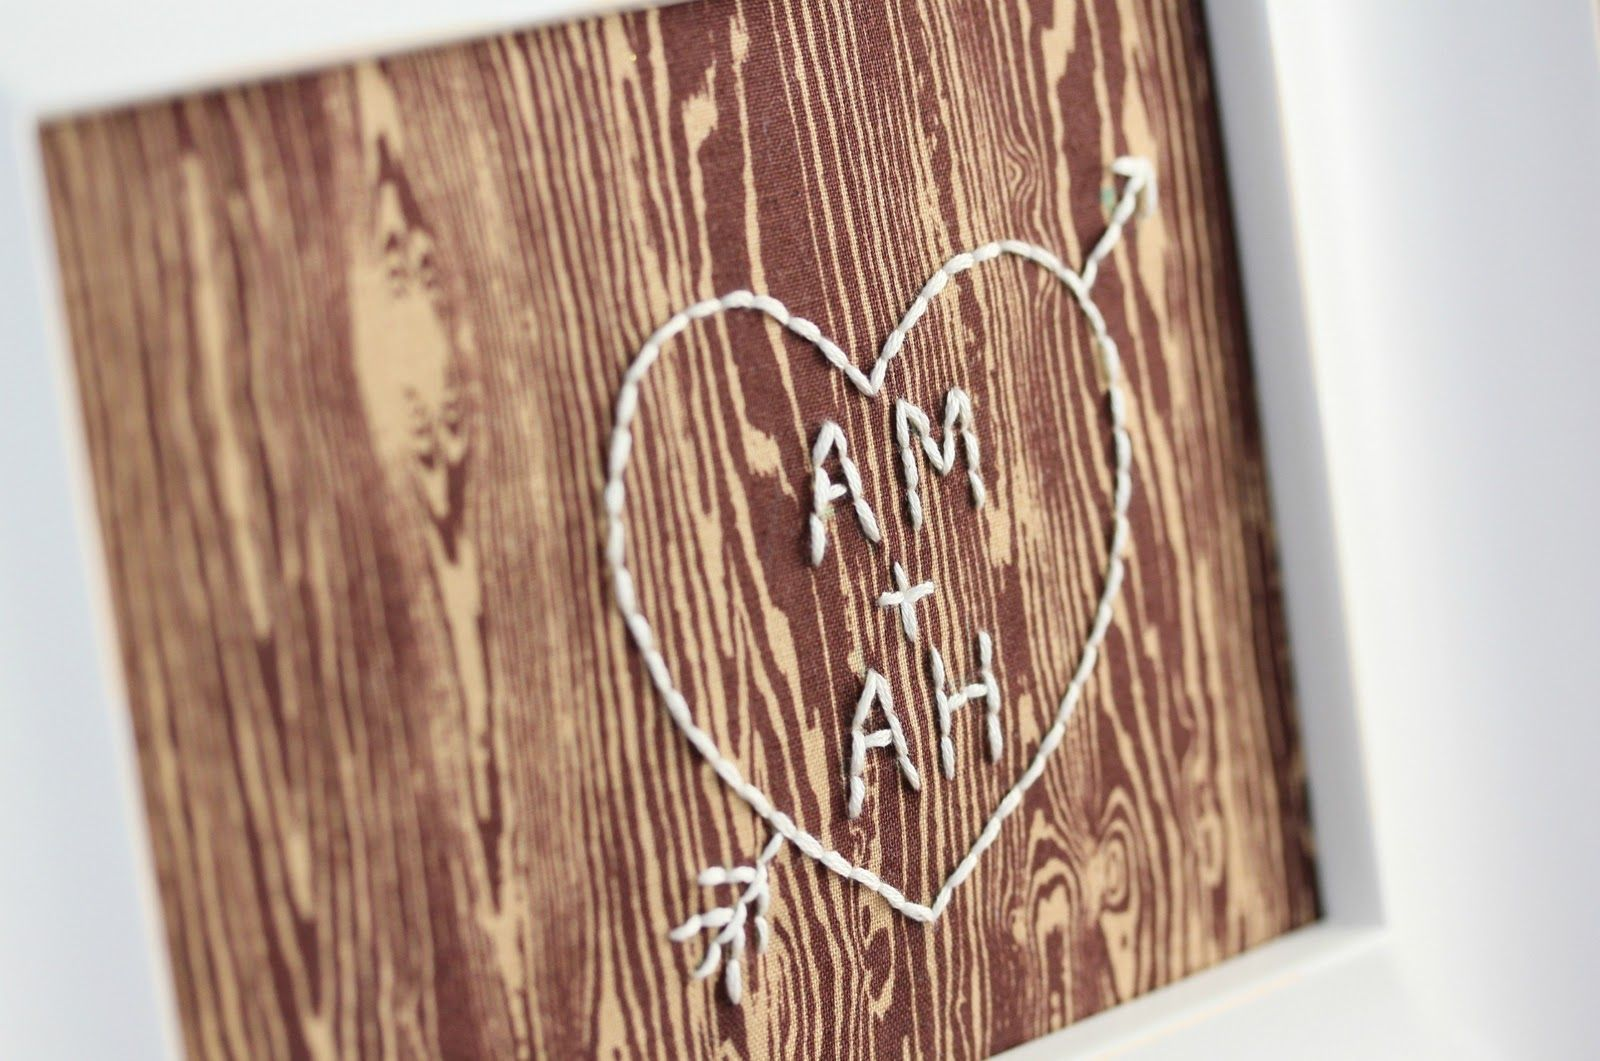 embroidery heart and initials on woodgrain fabric - cute idea! Maybe a pillow or a small throw blanket?